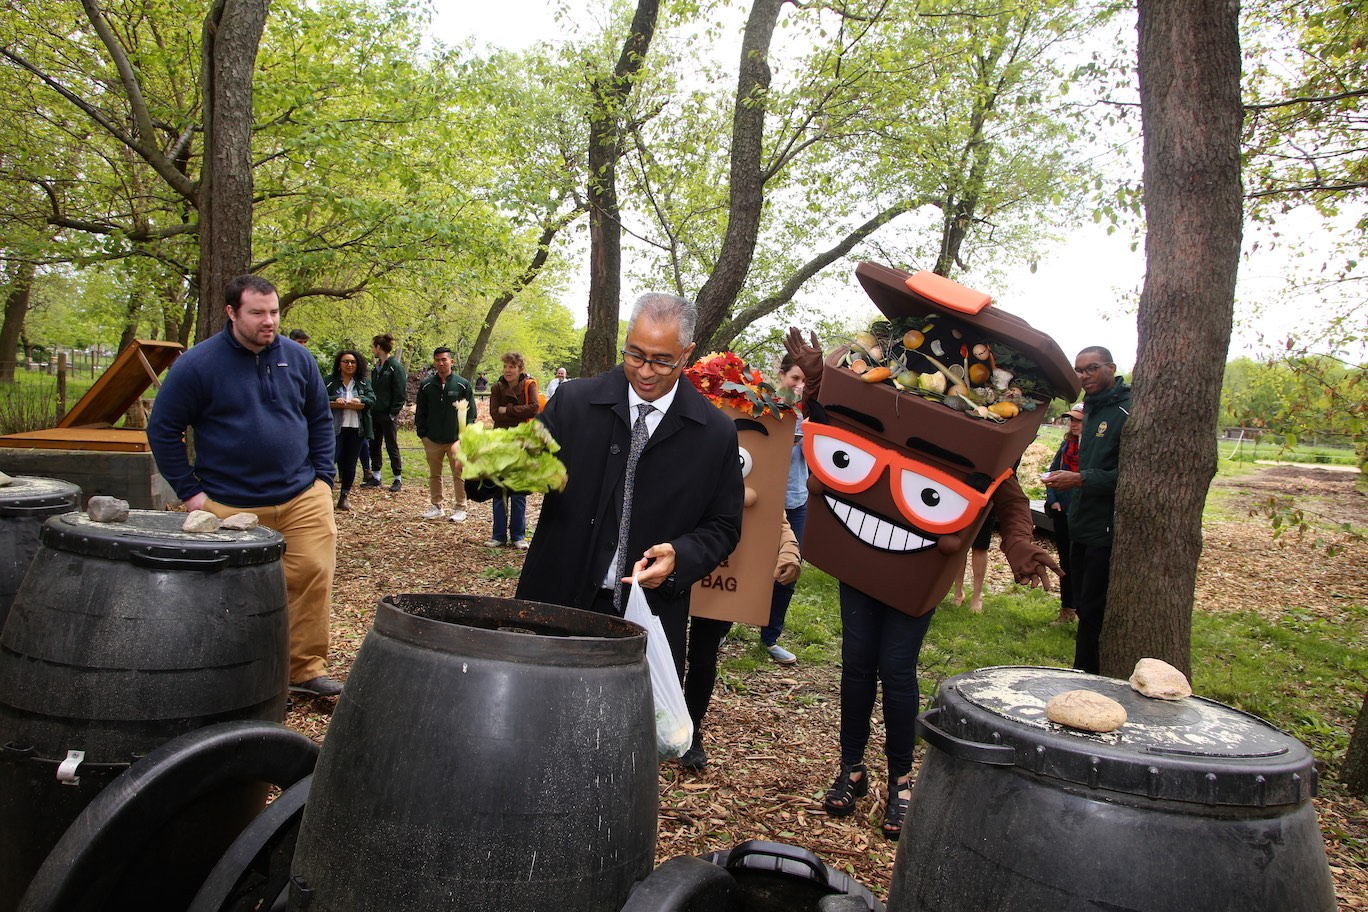 From left, Queens County Farm Executive Director Jennifer Walden Weprin, DSNY Deputy Commissioner of the Bureau of Recycling and Sustainability Bridget Anderson, Scrappy the Brown Bin, Leif the Lawn Bag, DSNY Acting Commissioner Steven Costas, and DSNY Chief and Director of Cleaning and Collection Edward Grayson.